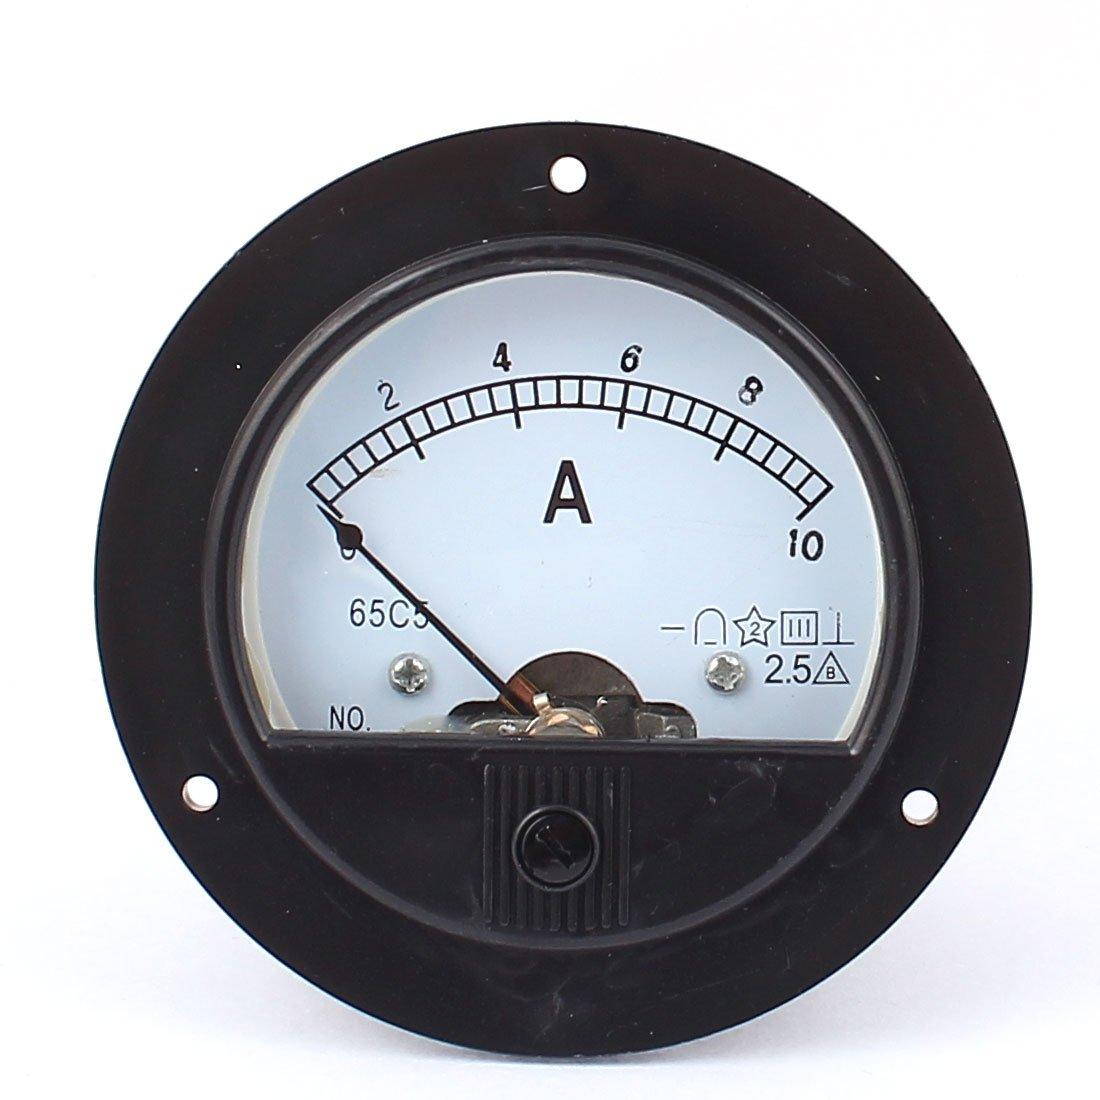 Amazon.com: uxcell DC 0-10A Round Panel Meter Gauge Current Analogue ...